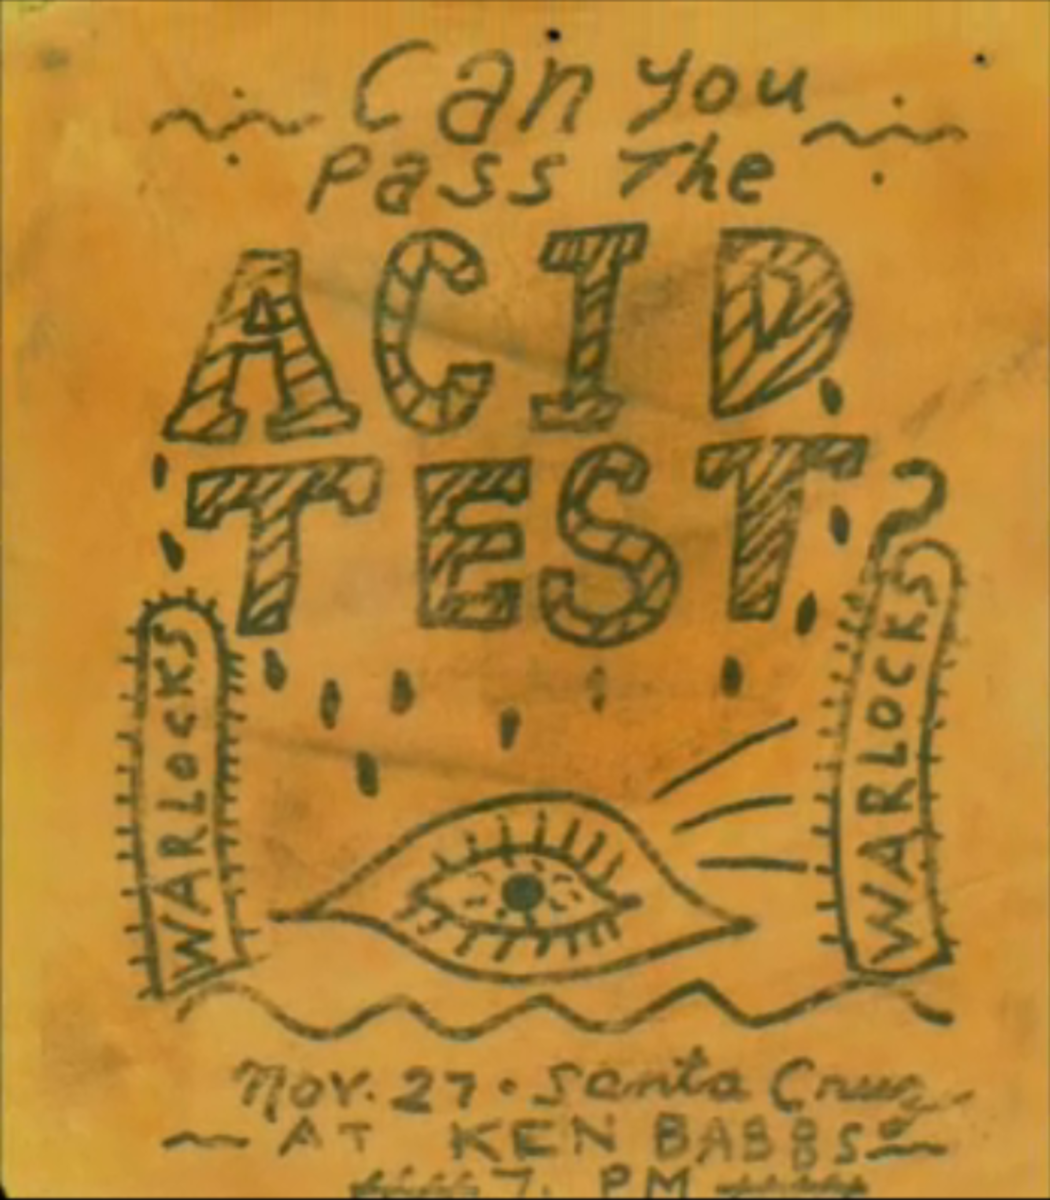 Santa Cruz Acid Test November 27, 1965 at Ken Babbs with the Warlocks